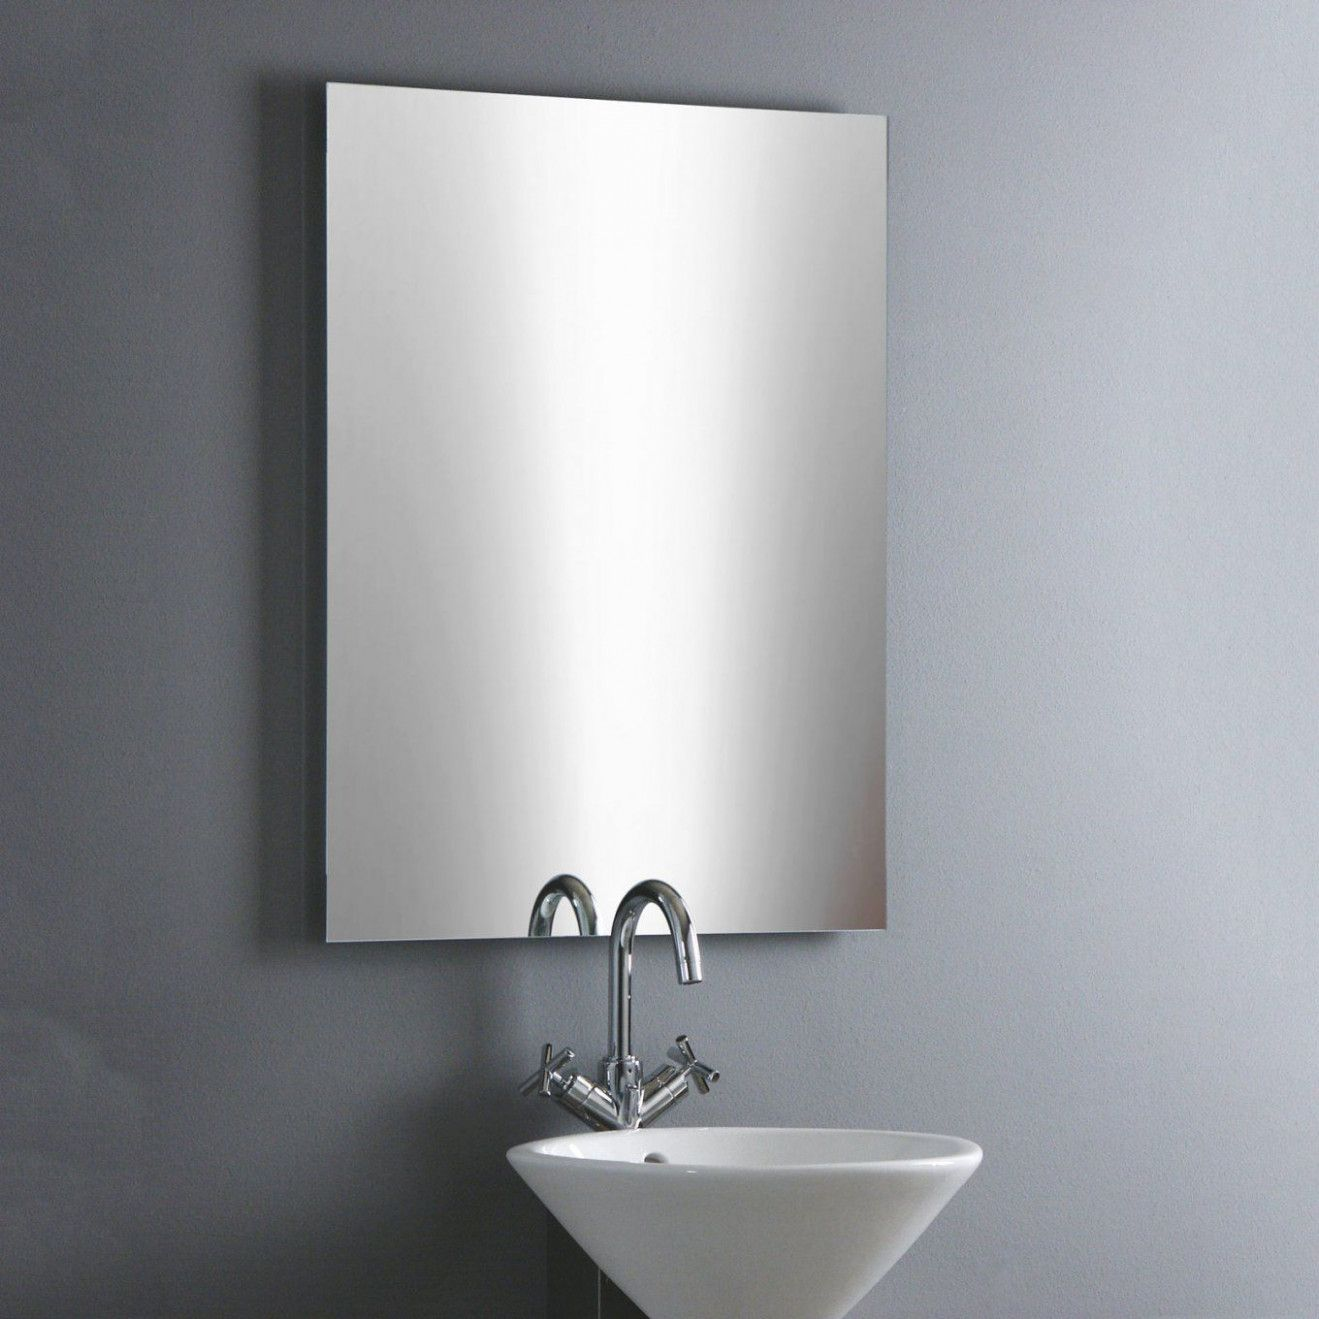 Warum Ist Hellweg Badezimmer Spiegel So Beruhmt Badezimmer Ideen Bathroom Mirror Lighted Bathroom Mirror Wall Lights